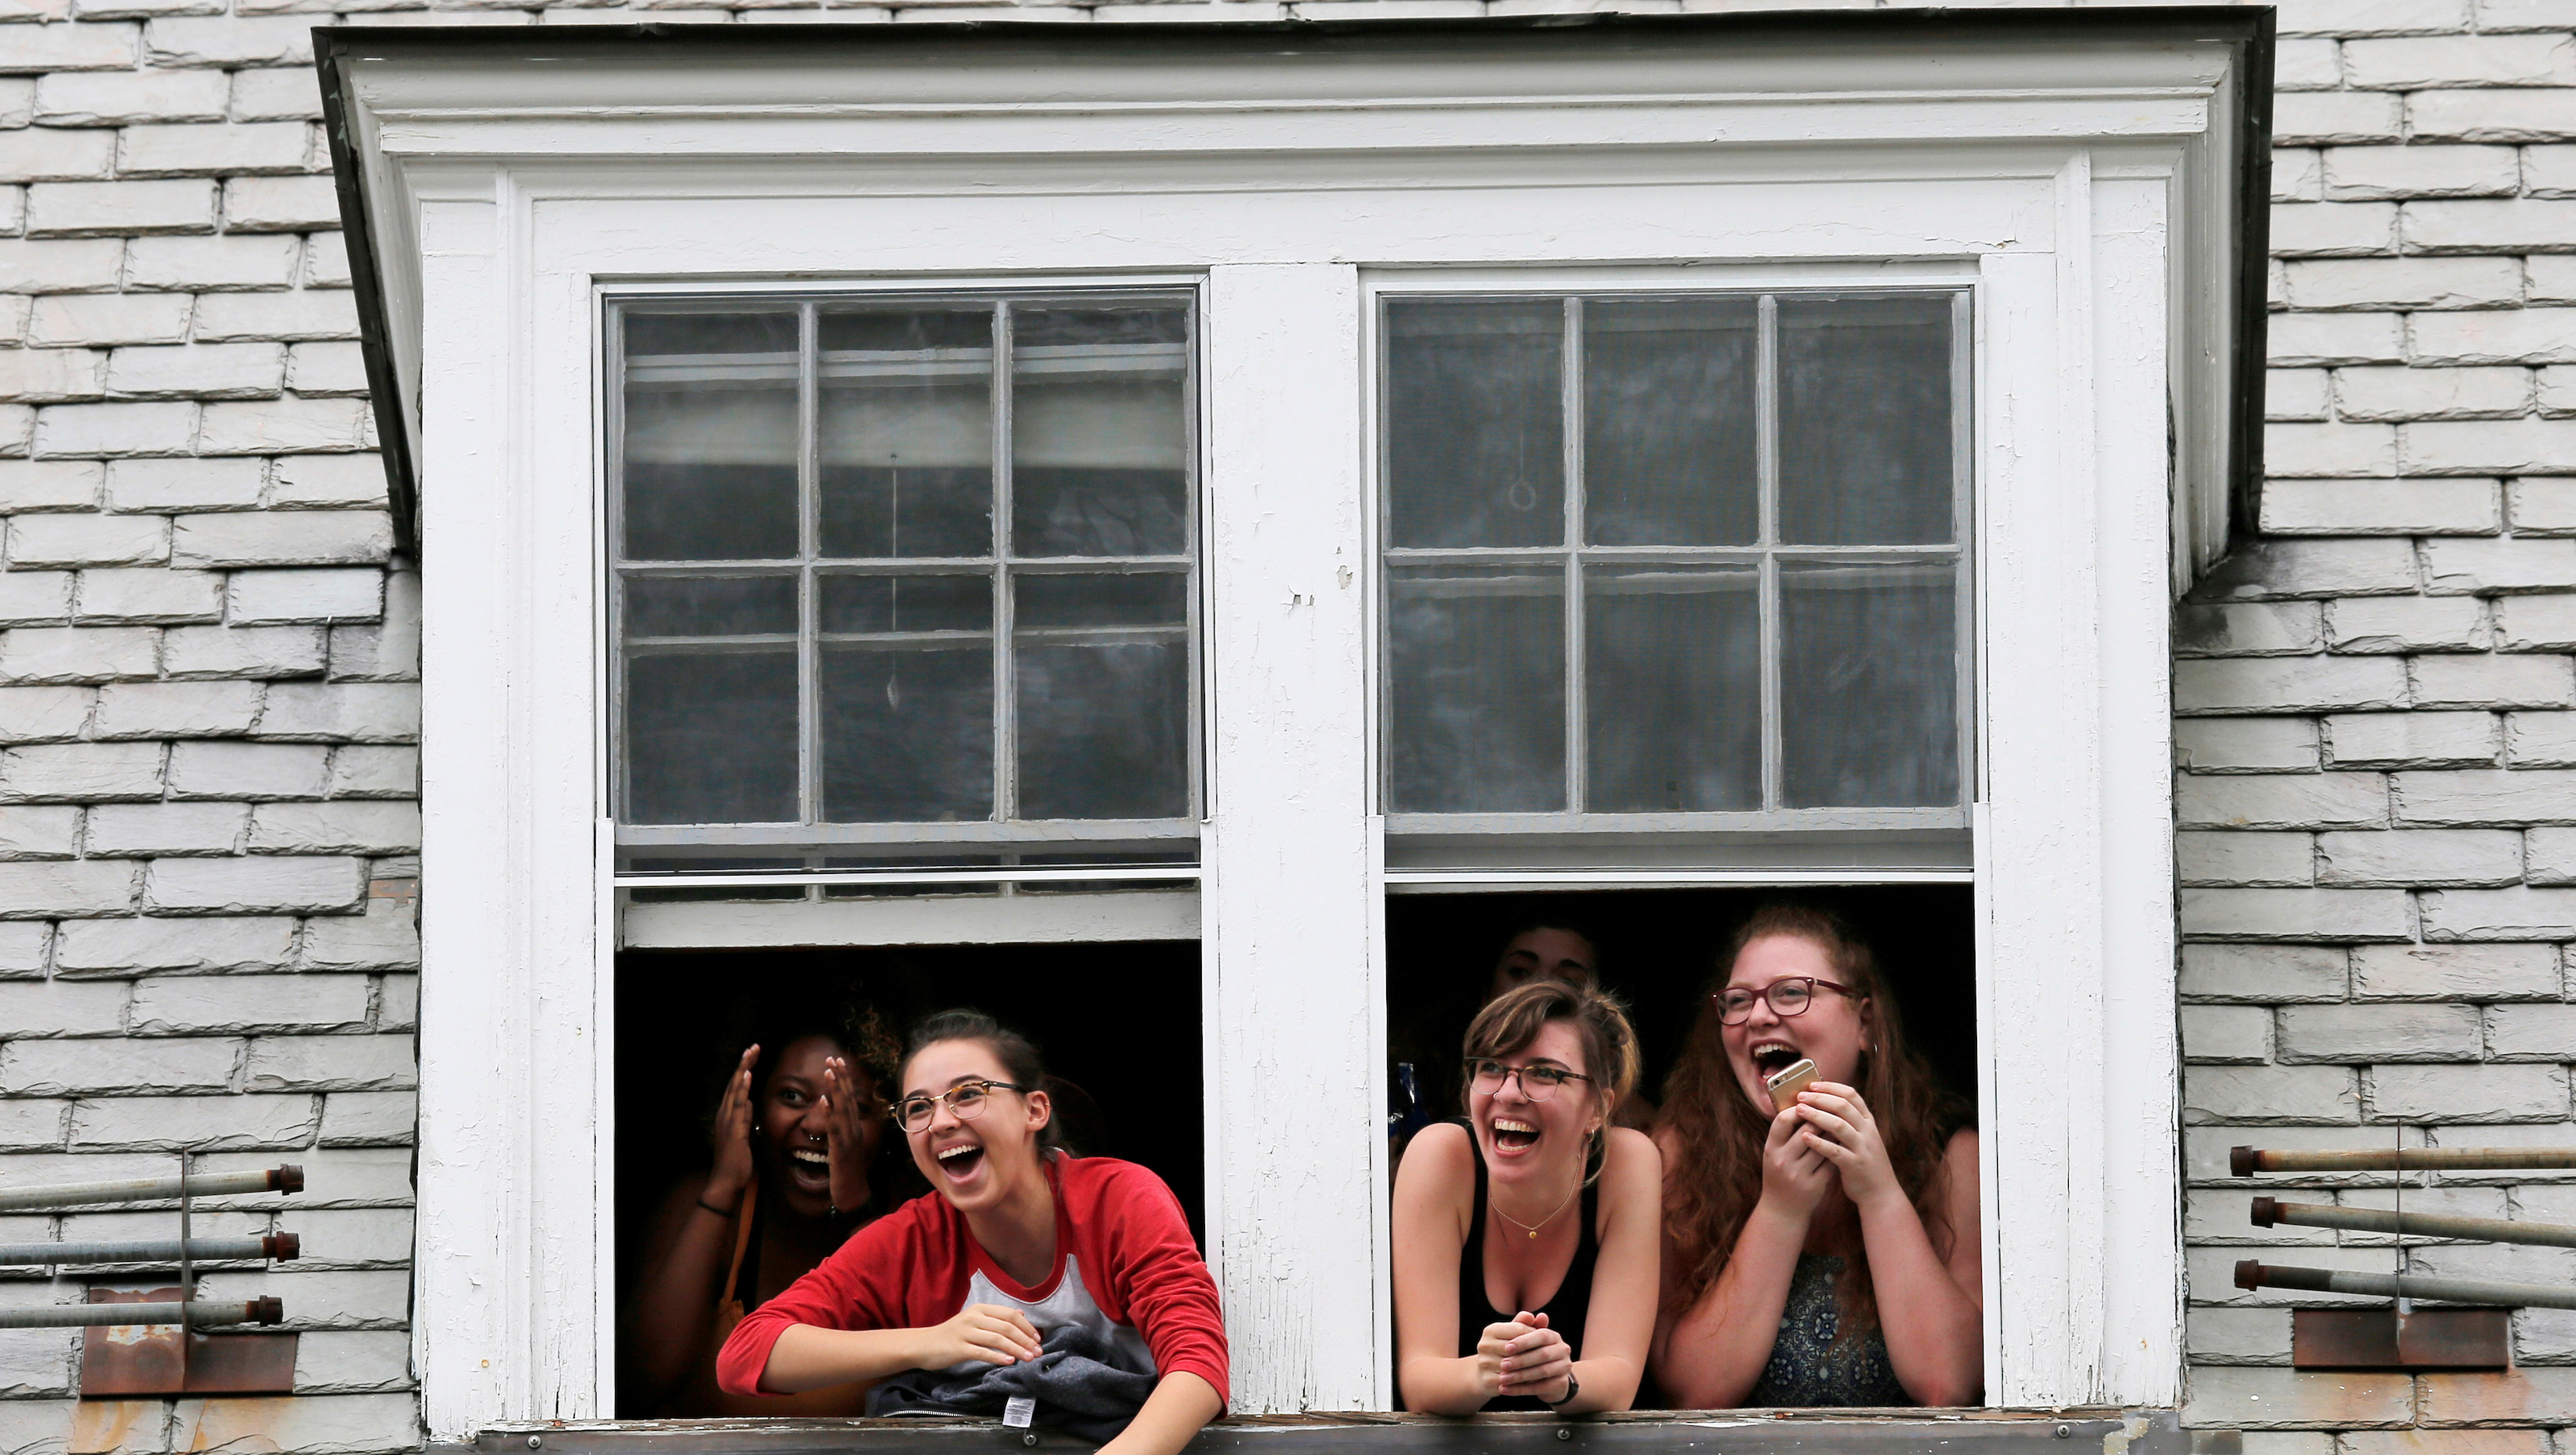 Students watch Commencement ceremonies from an overhead window at Smith College in Northampton, Massachusetts, U.S., May 21, 2017.   REUTERS/Brian Snyder - RTX36W2X